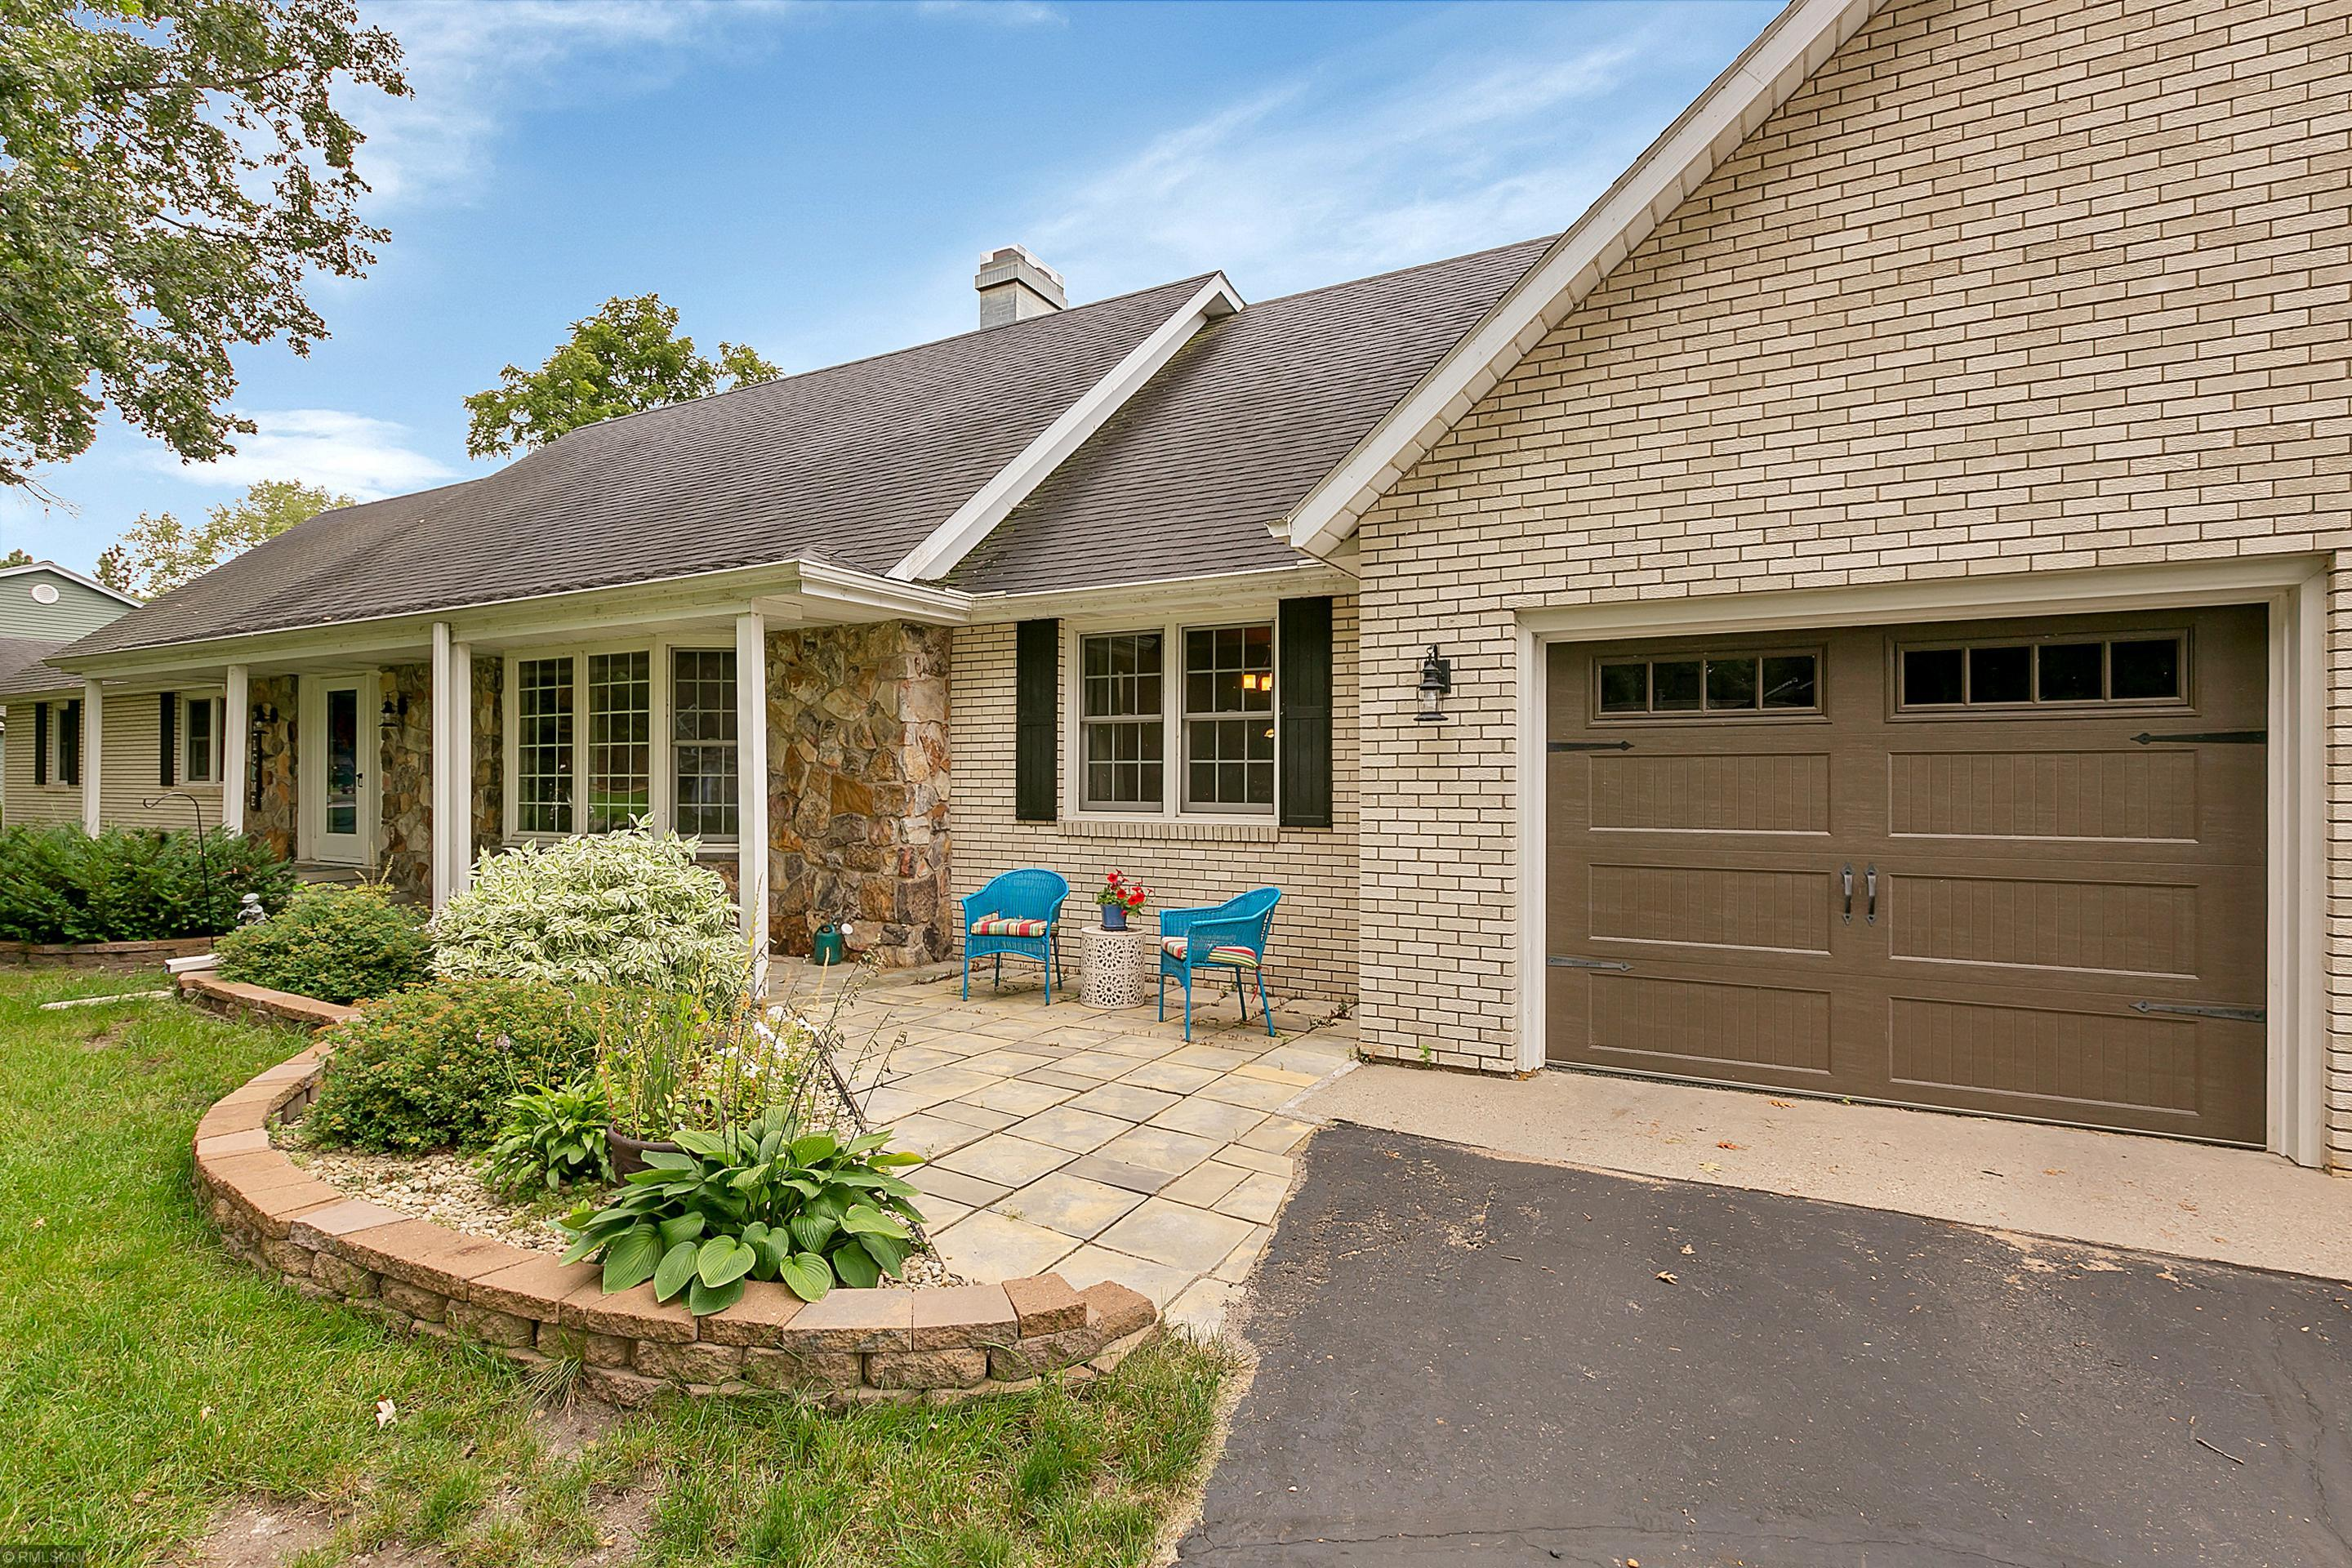 Beautiful home hidden behind Whitney with a private, fenced back yard, granite counter tops, huge closets and so much entertaining space. Master suite is on the main level and is connected to the executive office space. Love to cook? This is the kitchen for you.   Large eat in kitchen with extended island leads into the large dining room. Relax in the four season porch or spend time in the finished open concept basement with room for games, pool and ping pong. You will appreciate the updated wood flooring through the main level. This home is a must see.  Seller willing to include some furniture in sale.